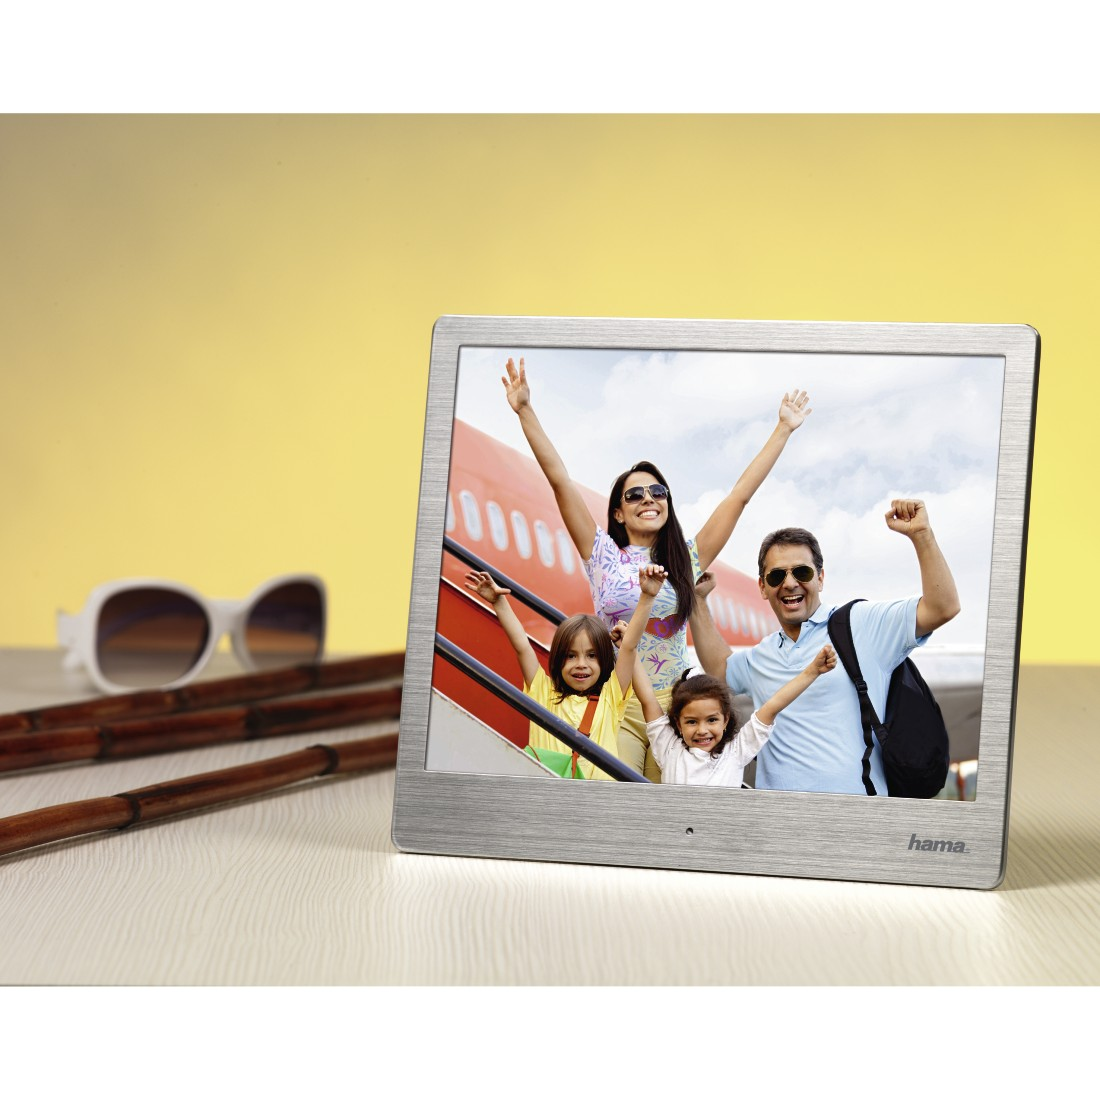 "awx2 High-Res Appliance 2 - Hama, ""8SLB"" Digital Photo Frame, 20.32 cm (8.0""), slim steel, 1024 x 768 px"